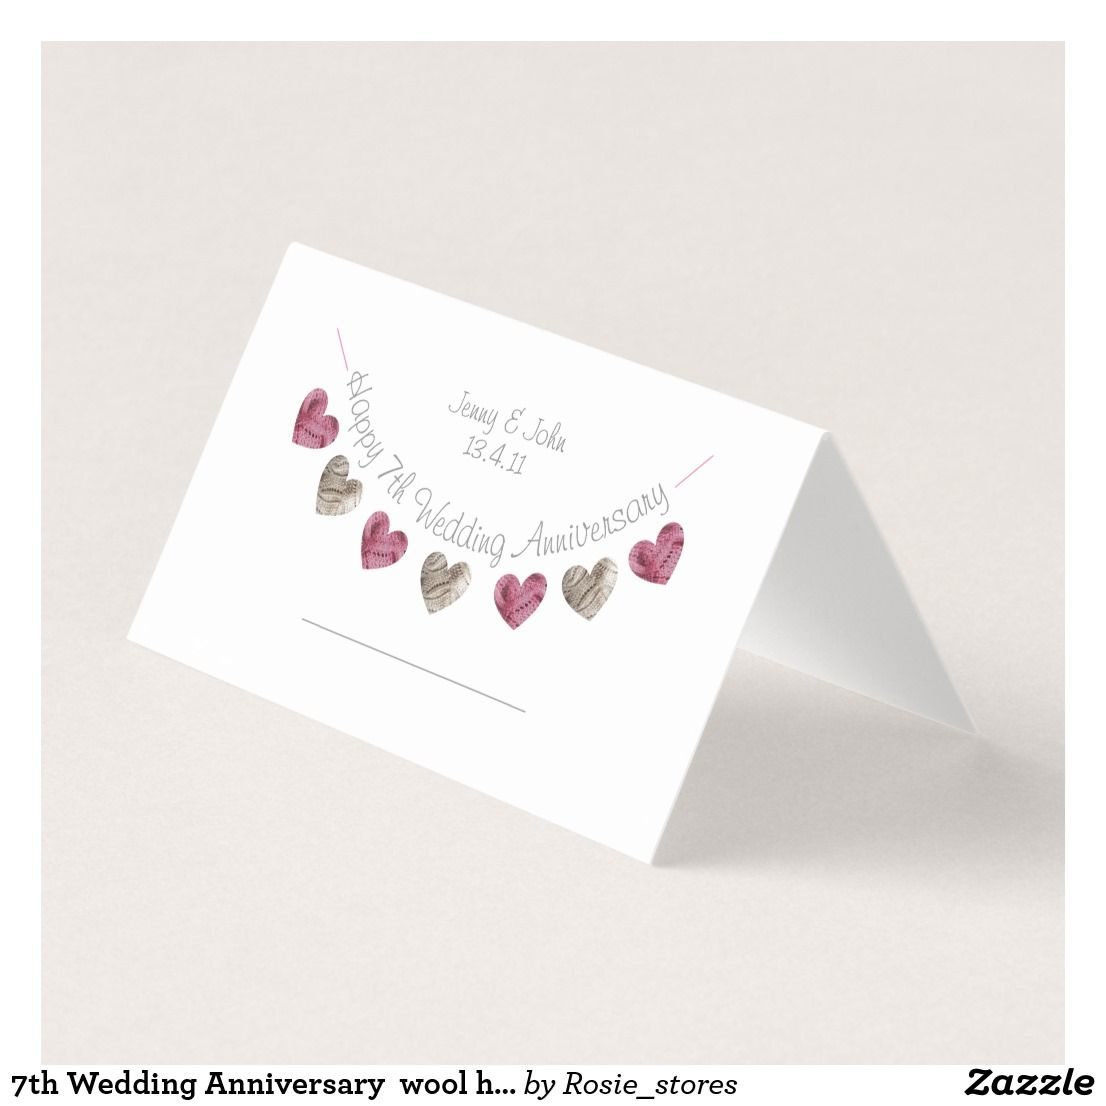 7th Wedding Anniversary wool heart placecard Zazzle.co